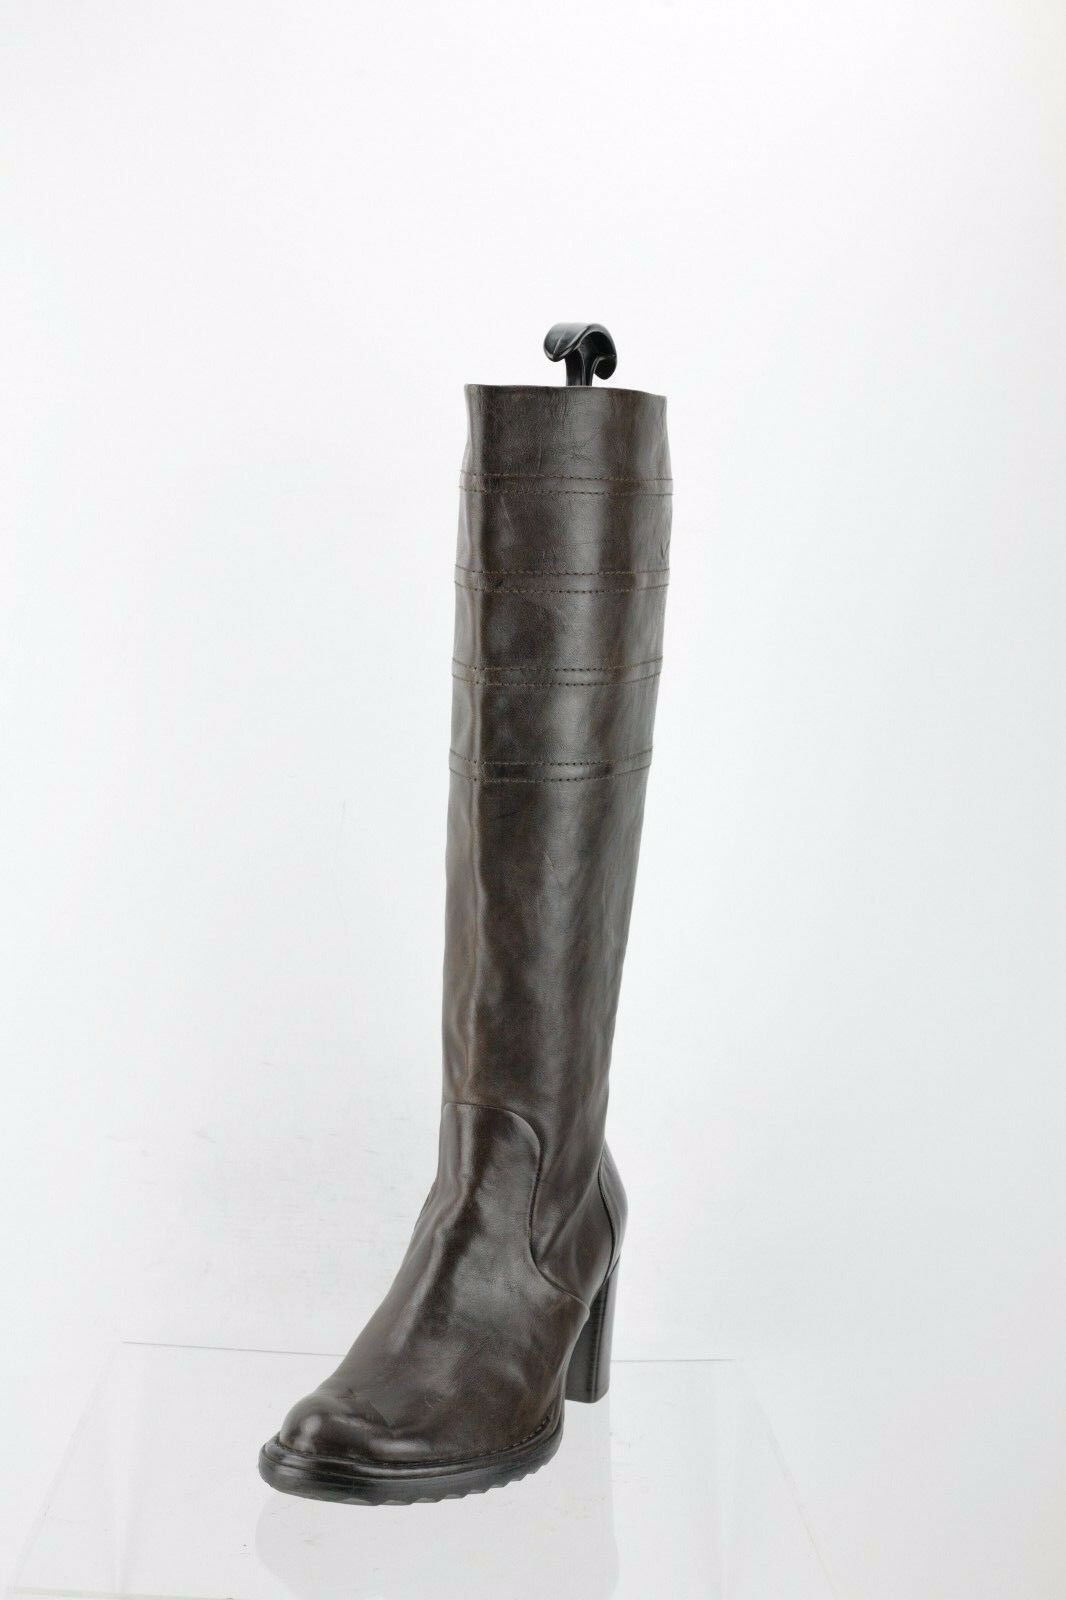 Alberto Fermani Nola Pepe Brown Knee High Boots Women's Shoes Size 36 M NEW